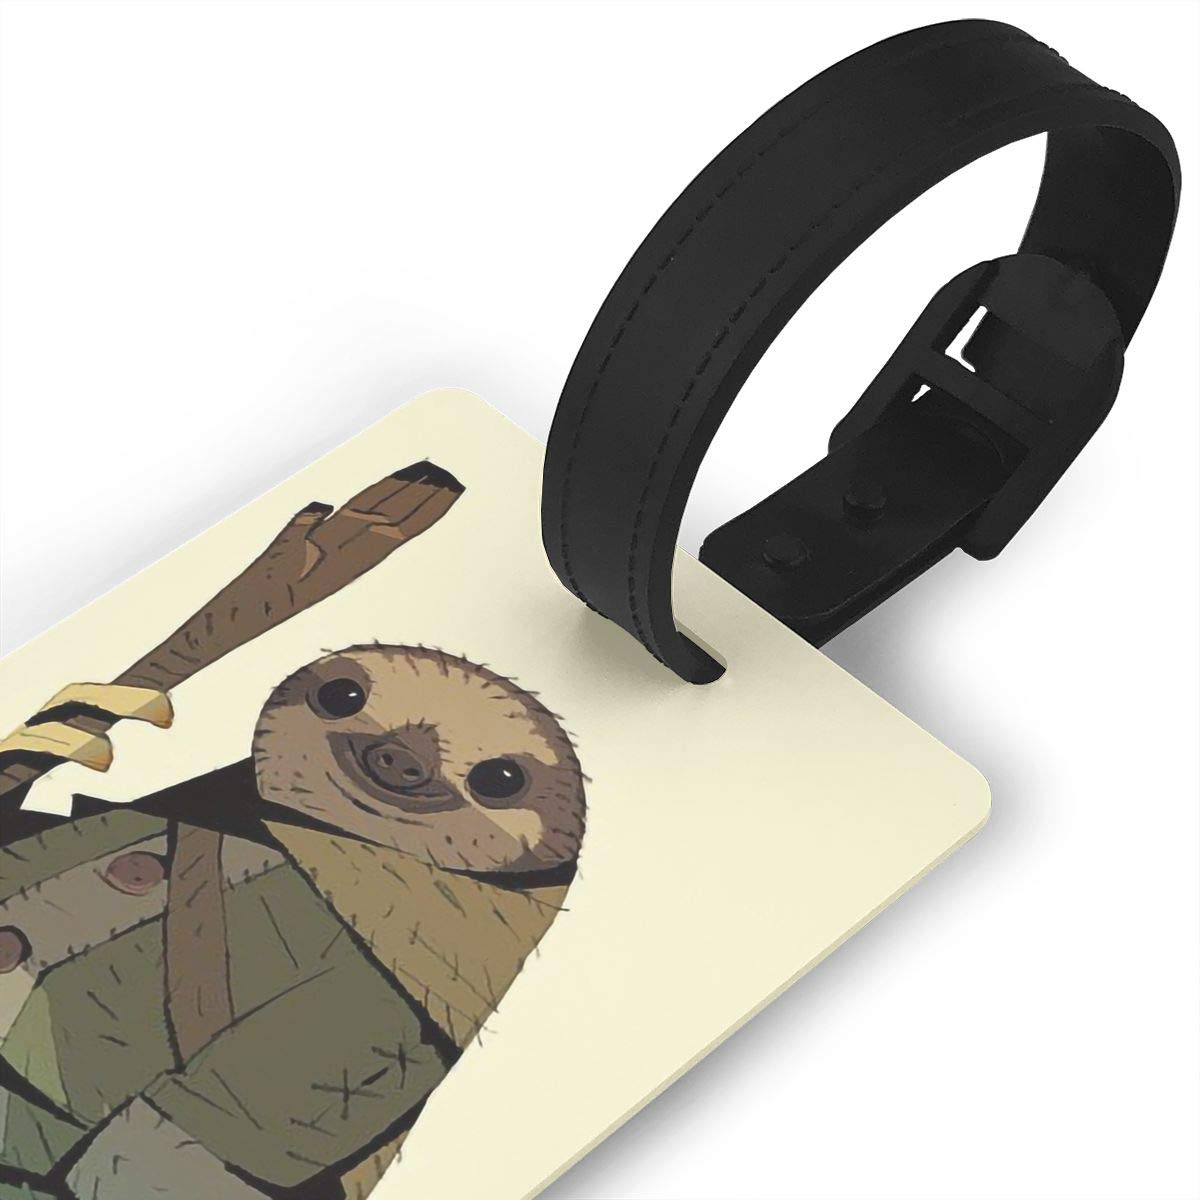 2 Pack Luggage Tags Sloth Baggage Tag For Travel Bag Suitcase Accessories